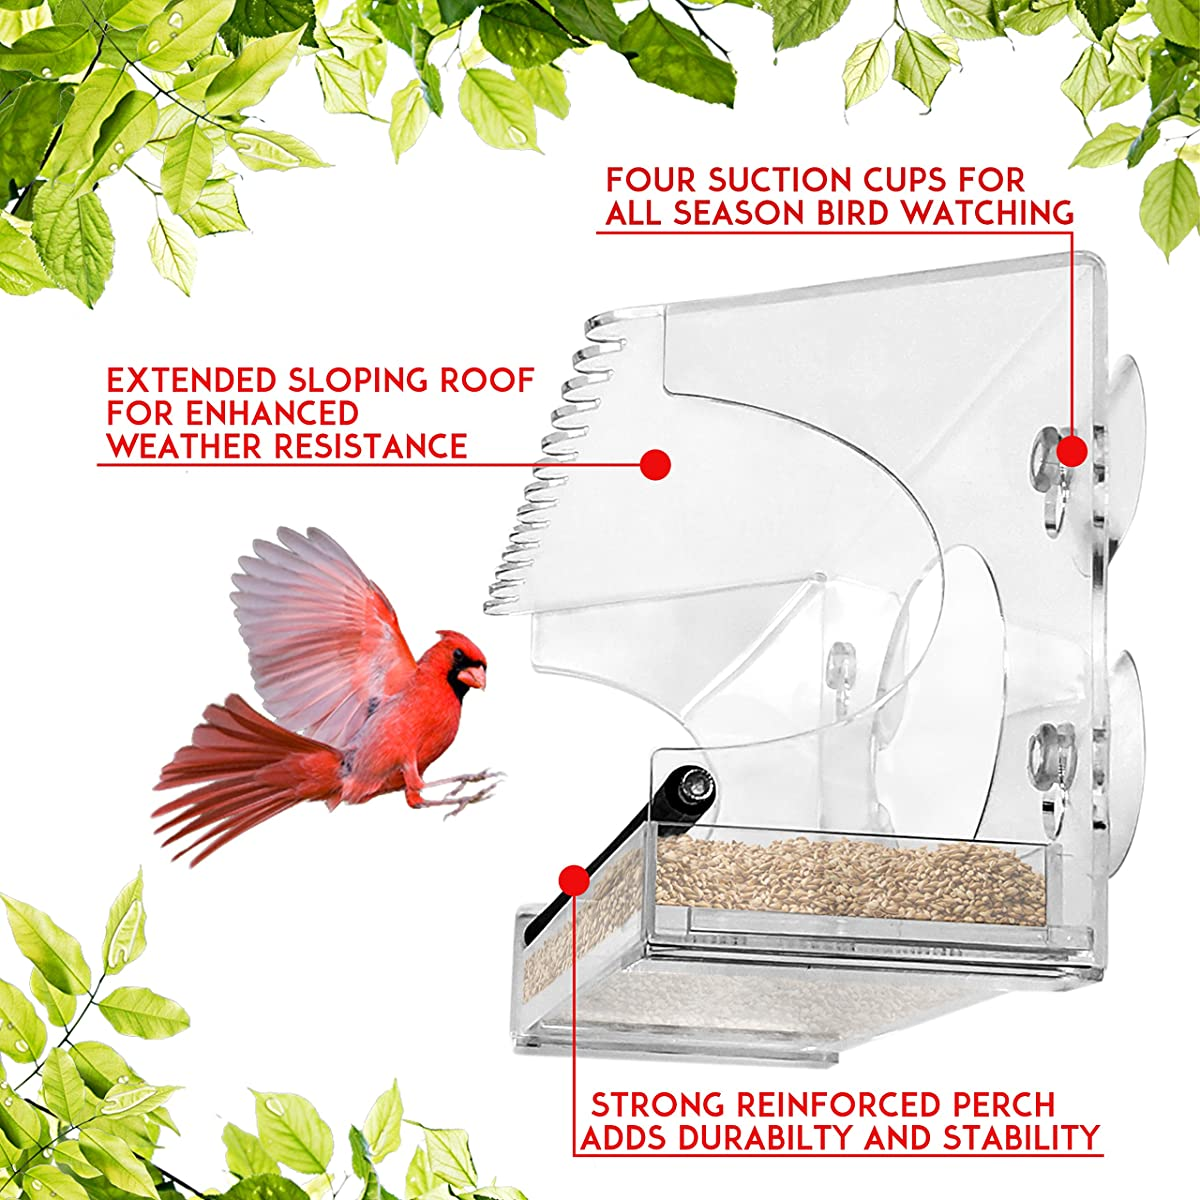 Nature Gear XL Window Bird Feeder - Extended Roof - Steel Perch - Sliding Feed Tray Drains Water - See Wild Birds Like Finches, Cardinals and Chickadees Up Close!